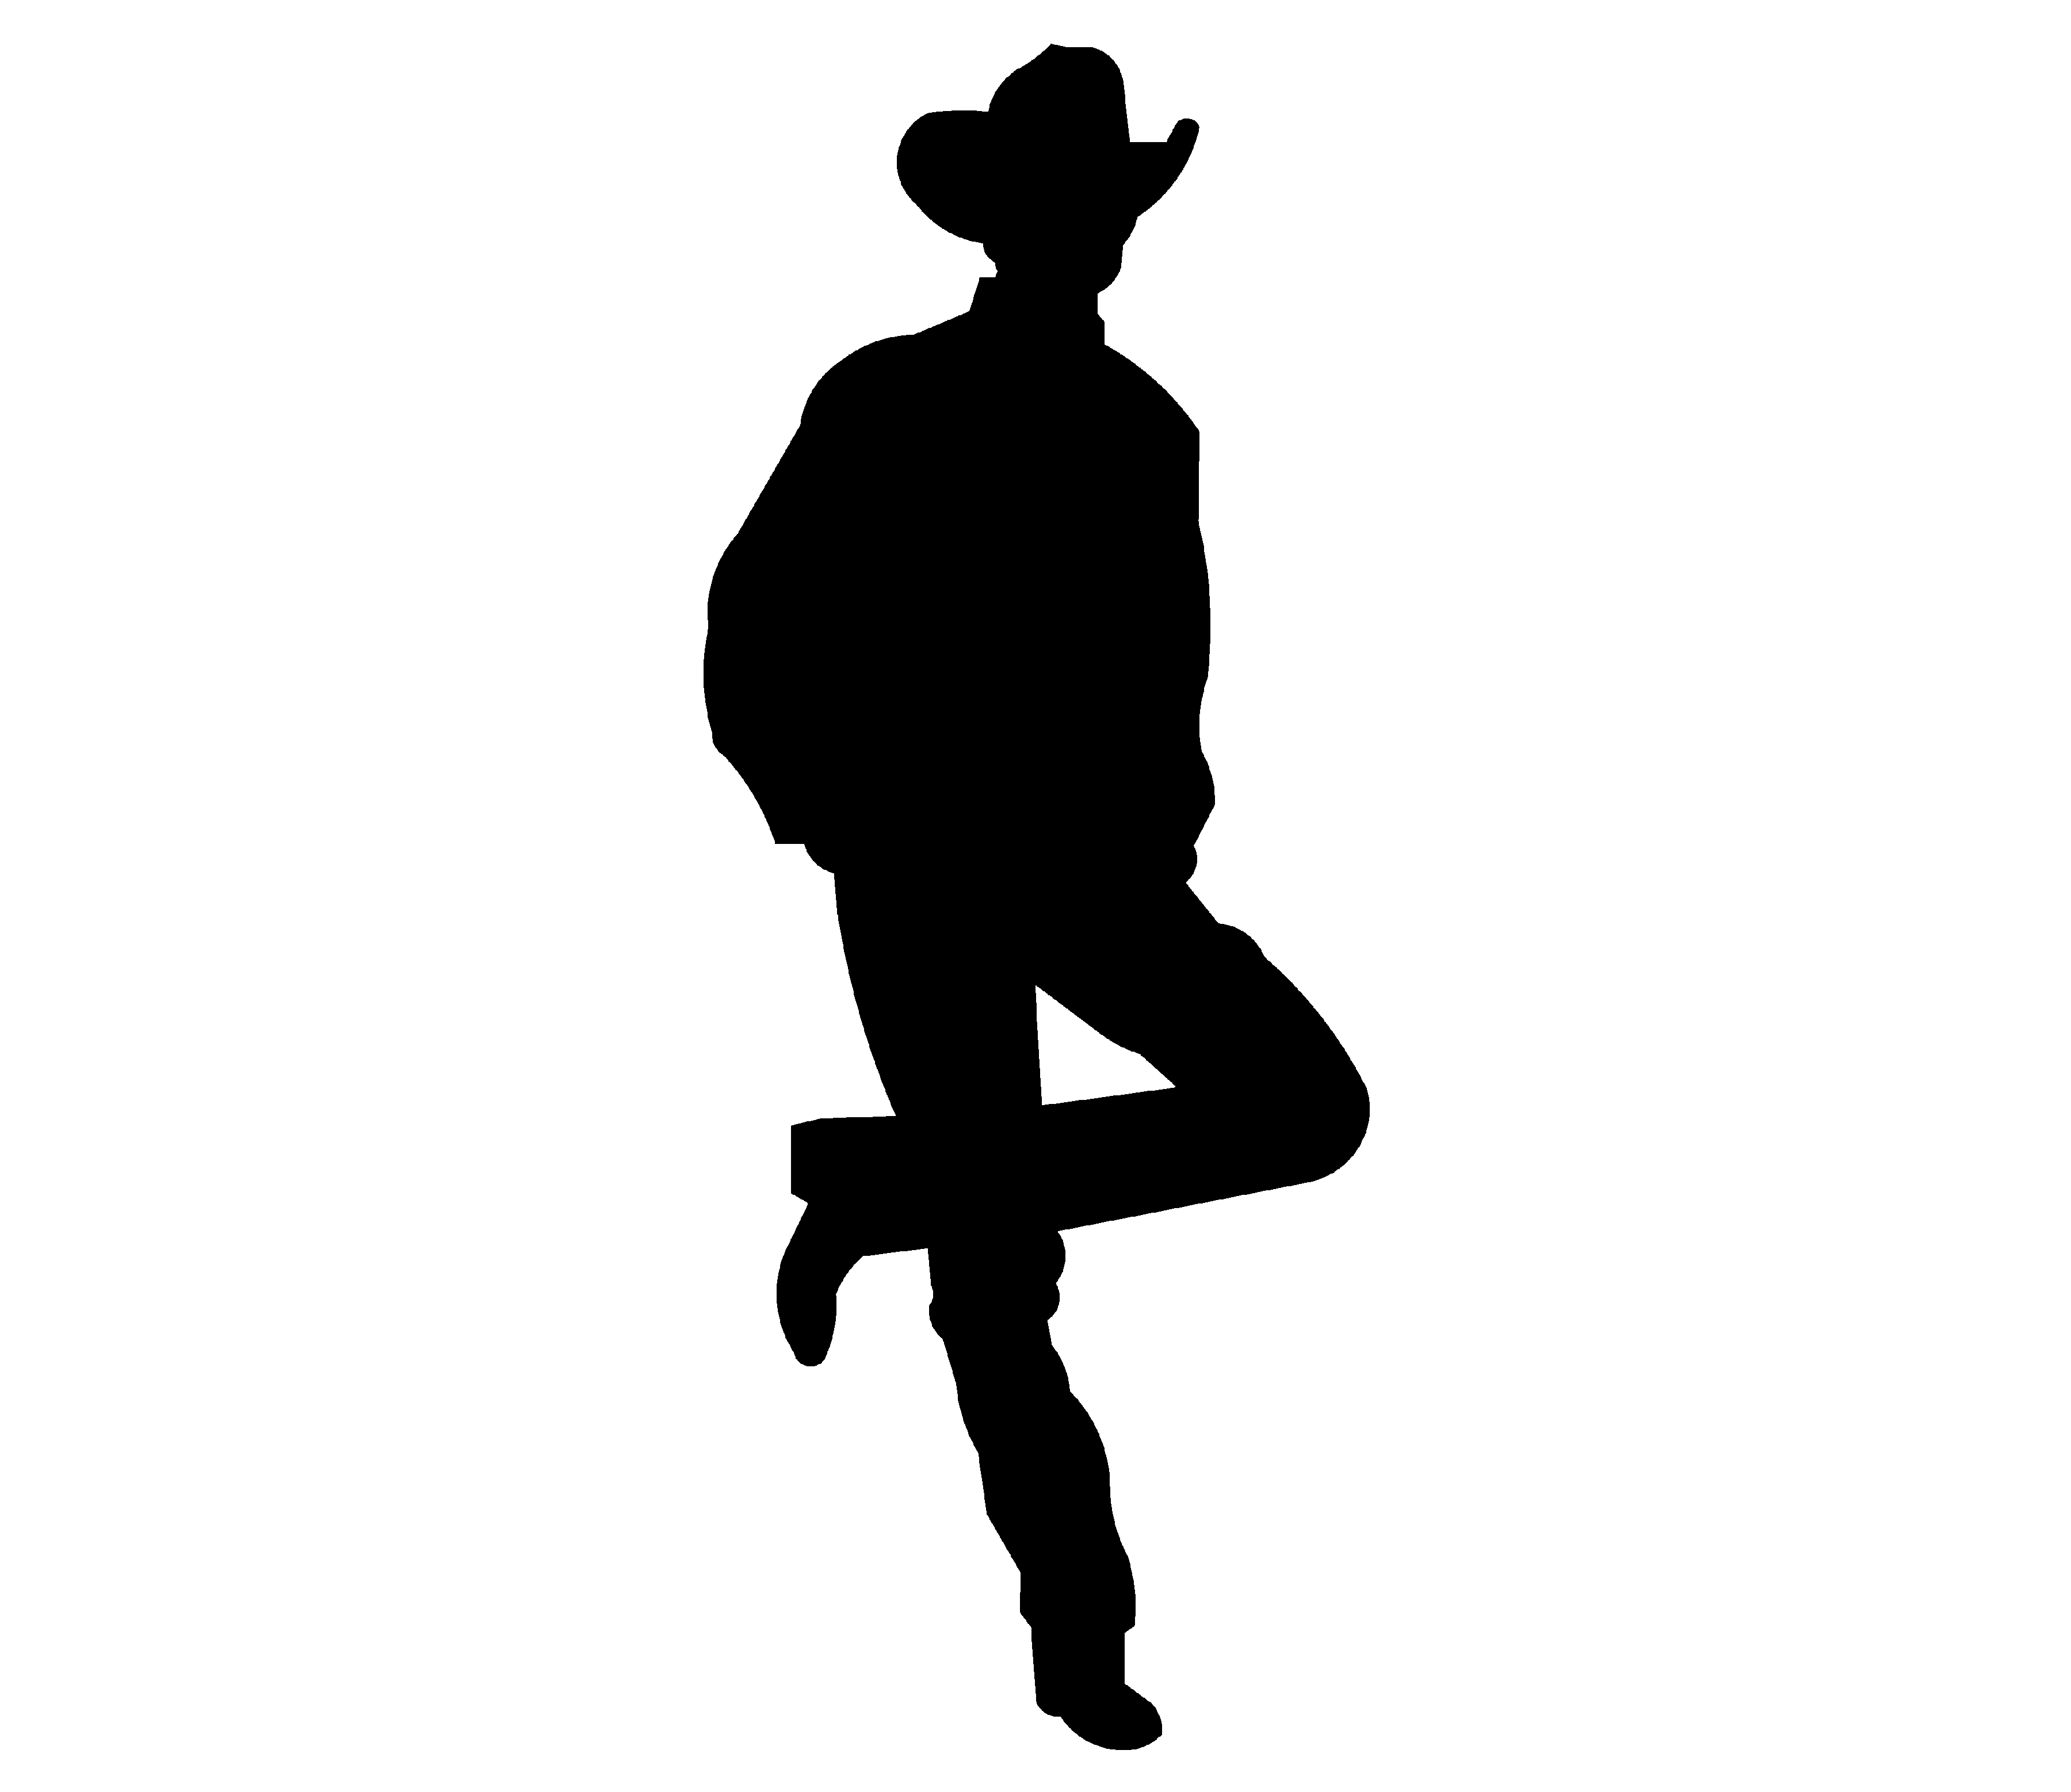 Cowboy clipart western person. Maybe this one side